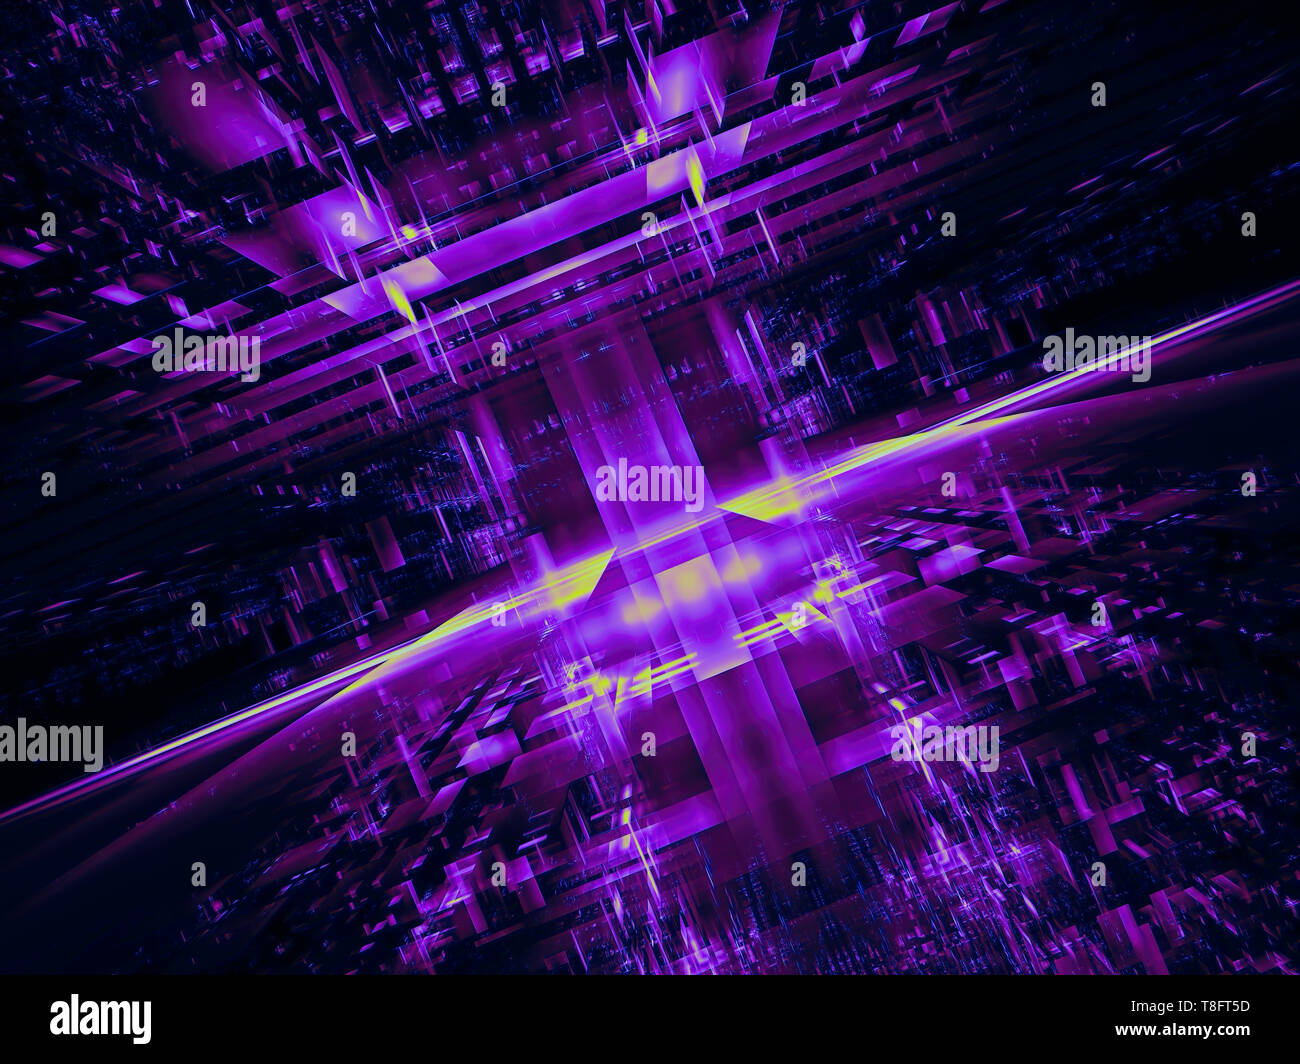 Abstract futuristic portal or space station - digitally generated image - Stock Image